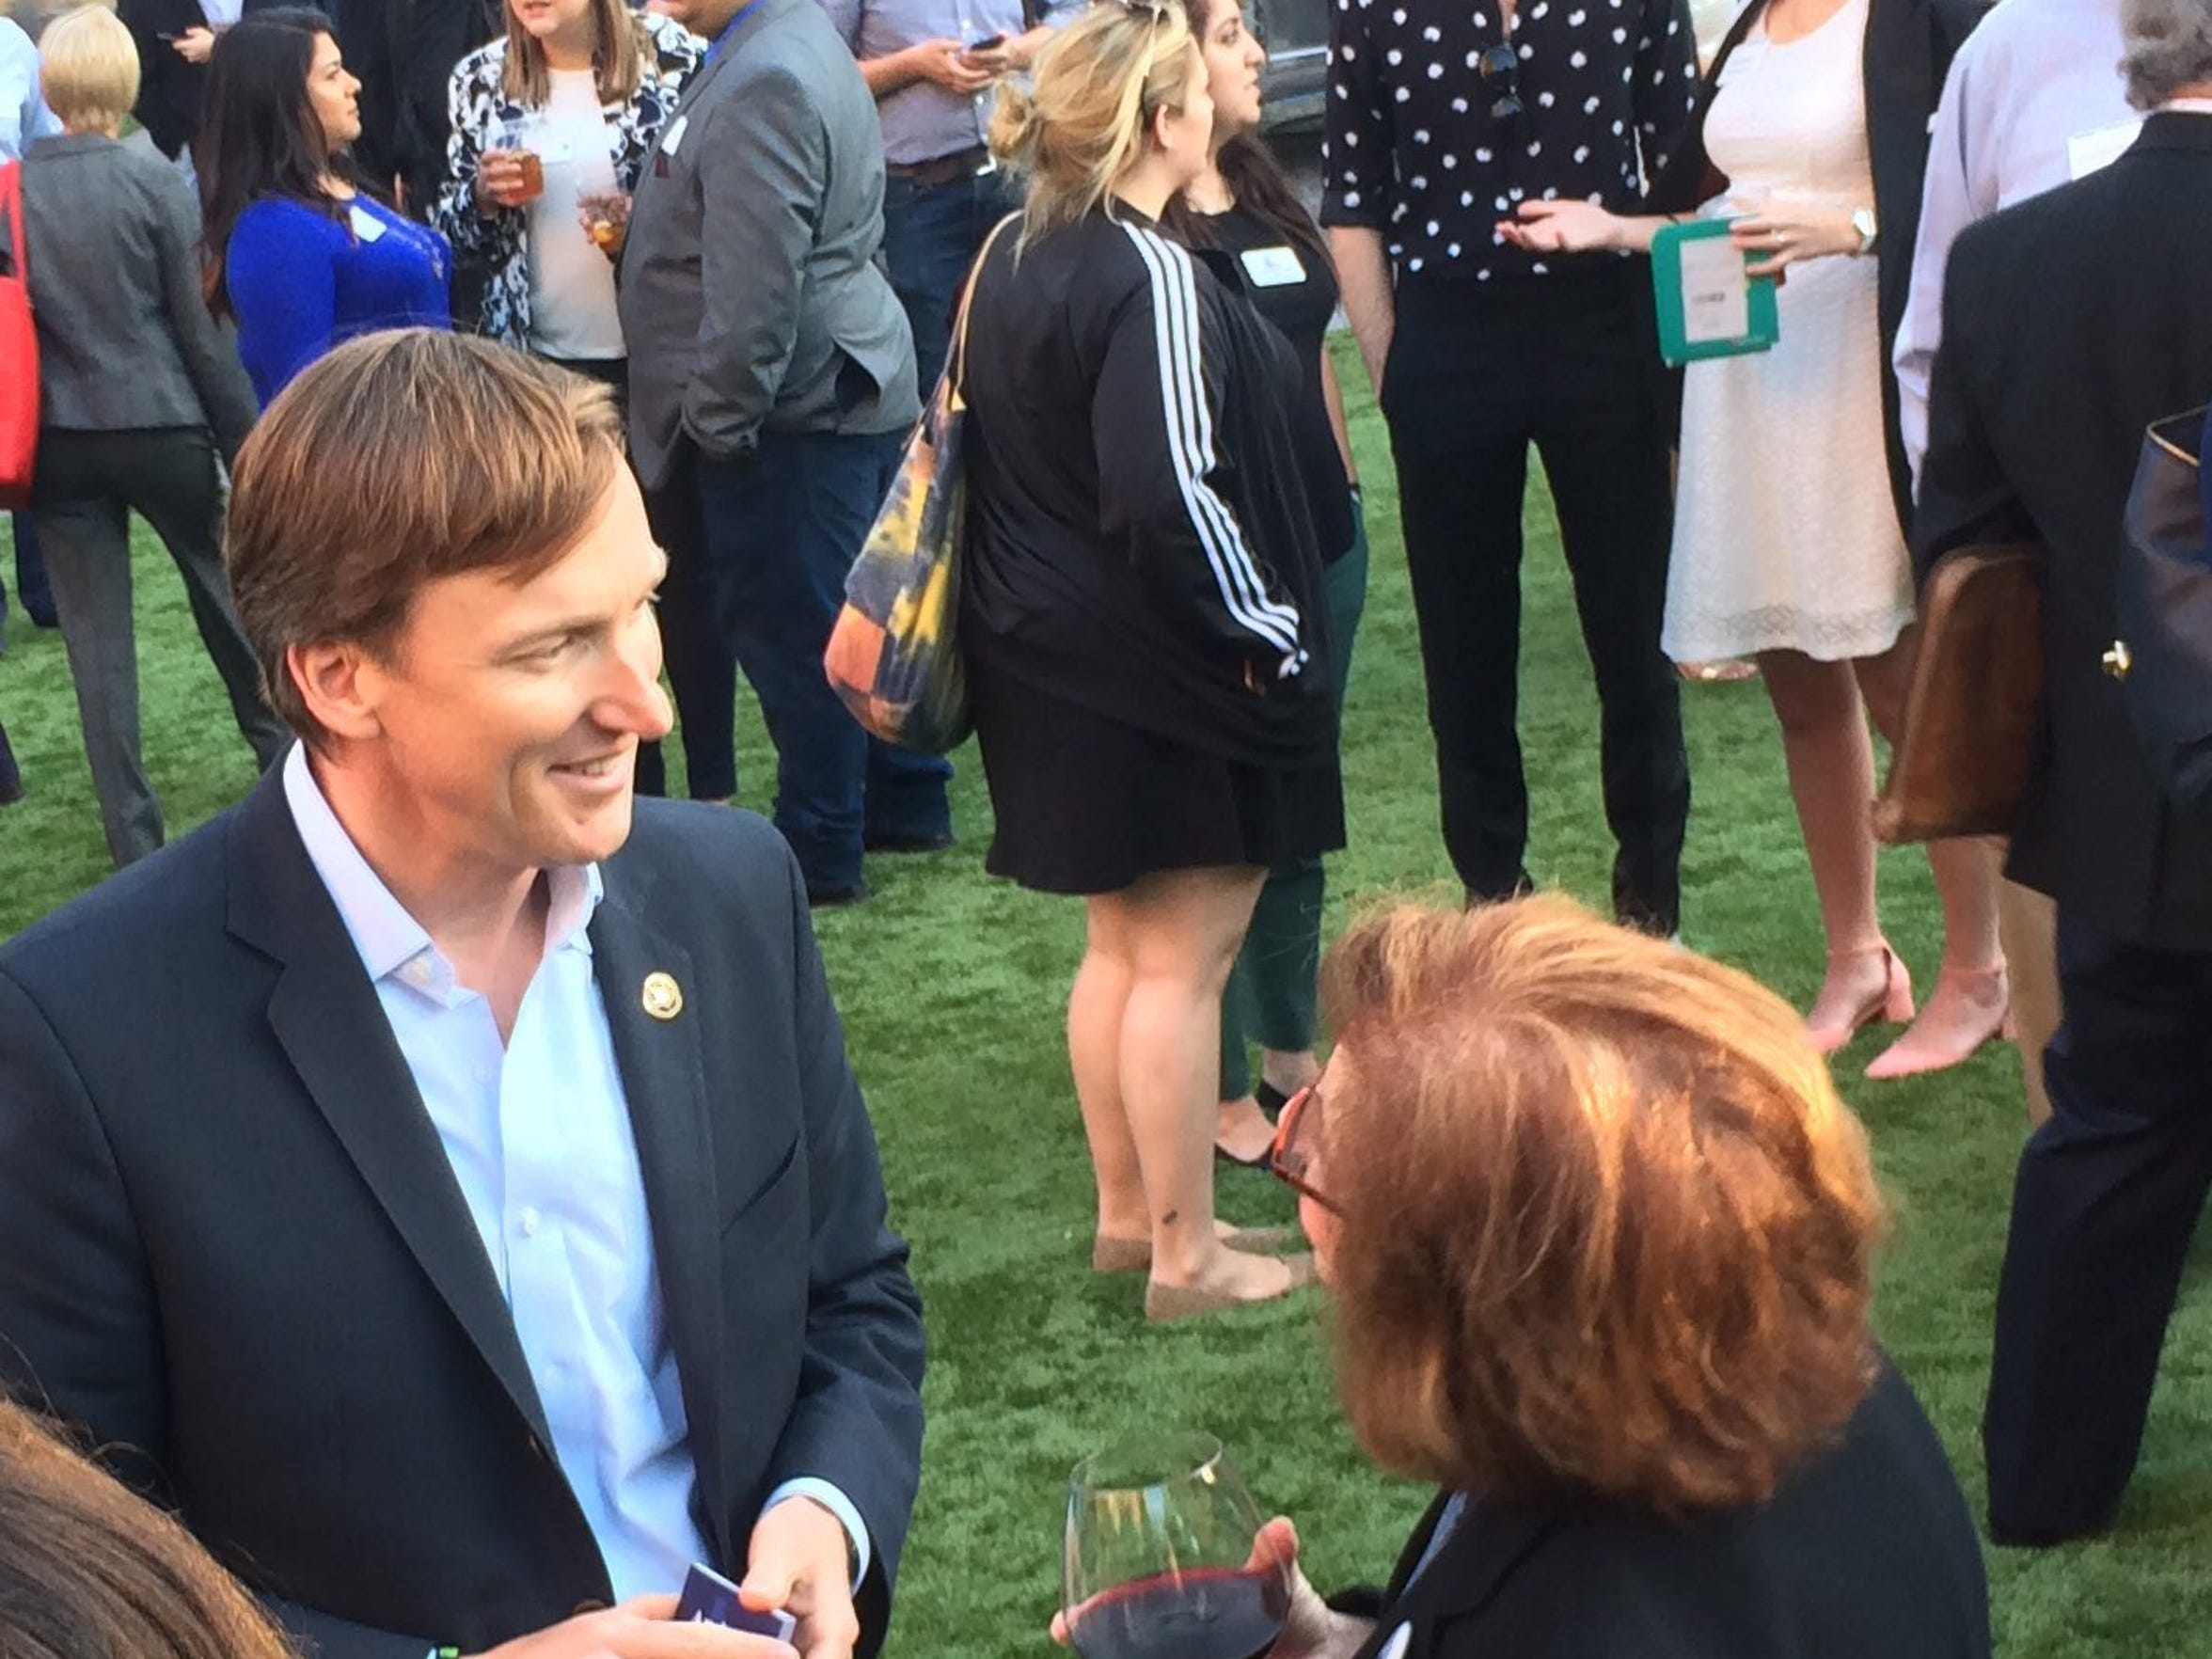 Andrew White chats with Democrats at party event in Austin on April 14, 2018.